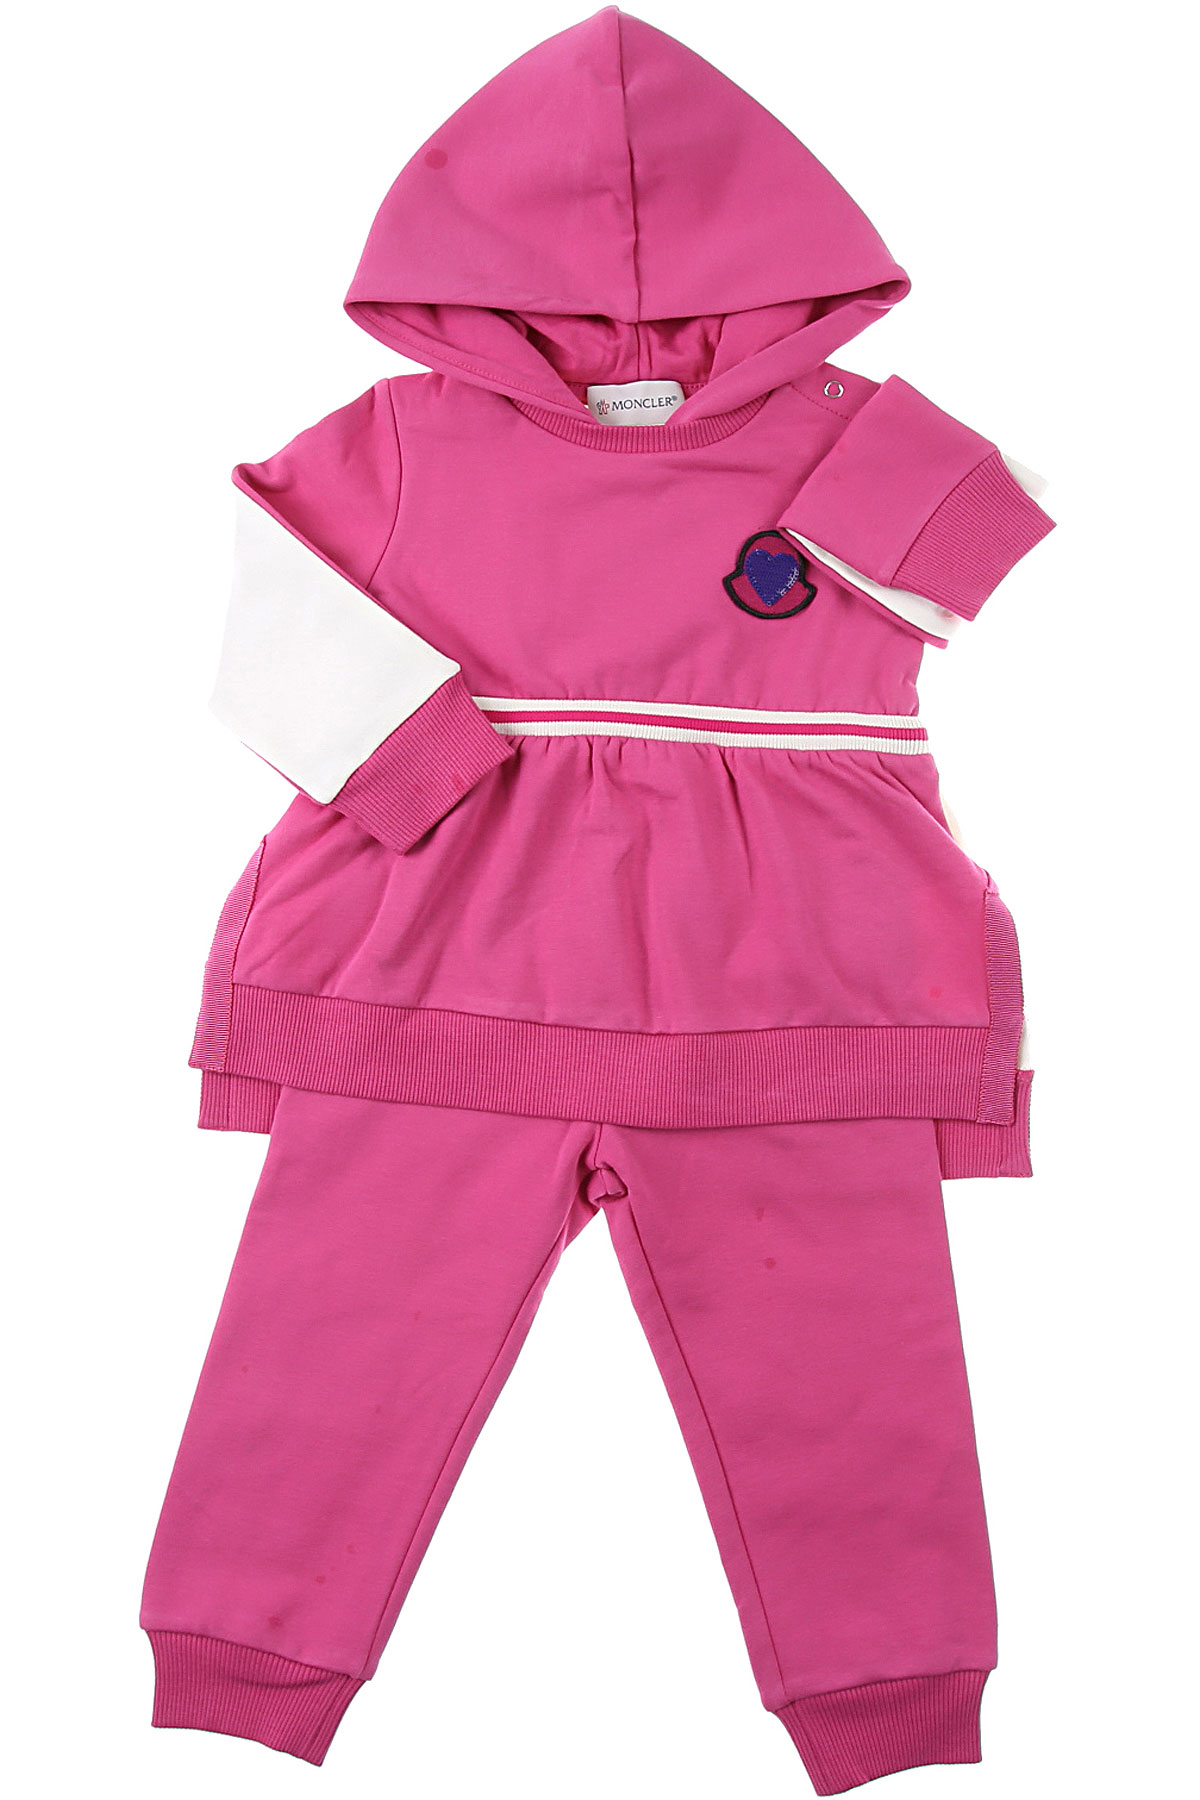 Moncler Baby Sets for Girls On Sale, fucsia, Cotton, 2019, 12M 18M